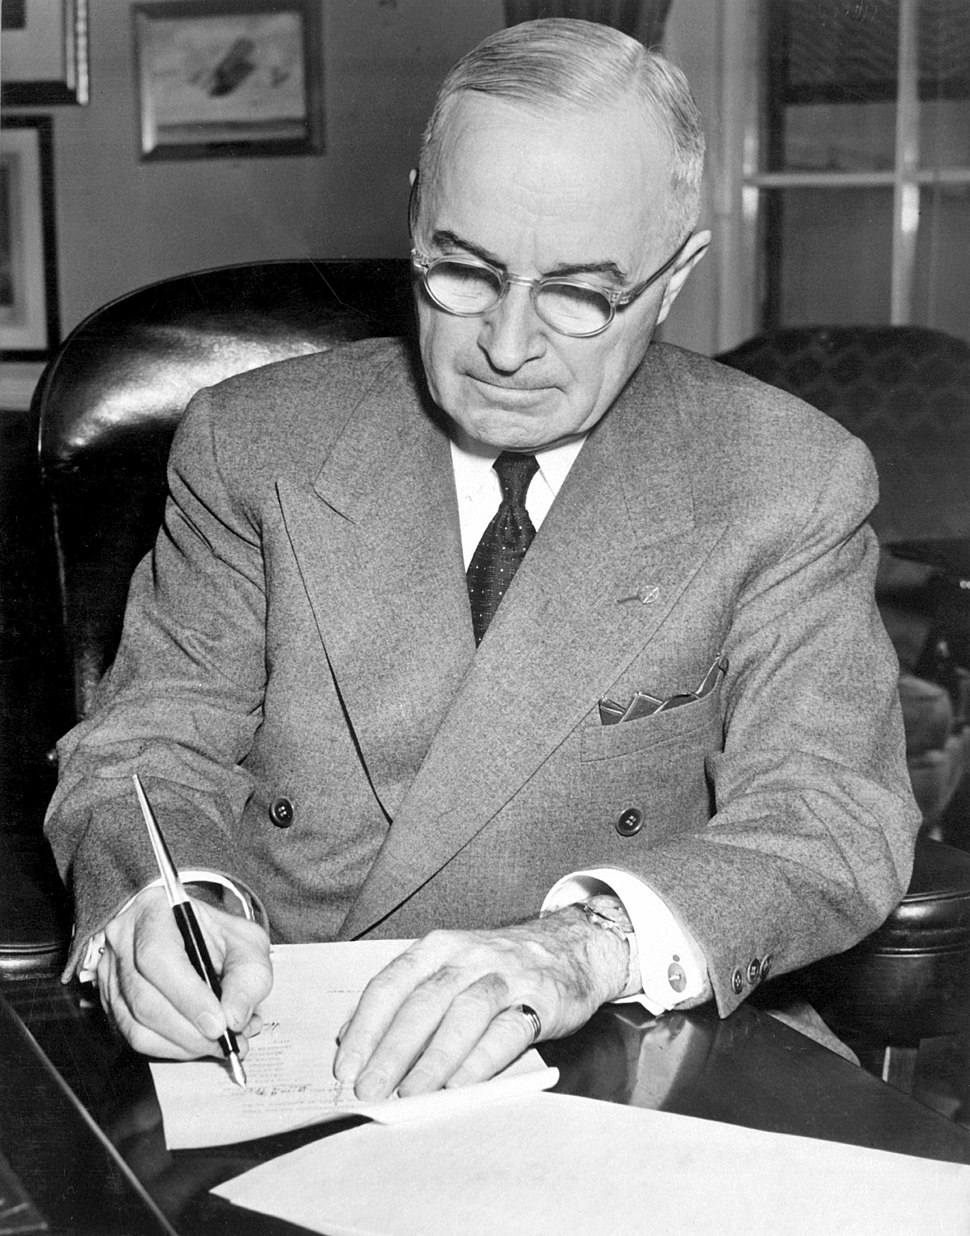 Truman initiating Korean involvement